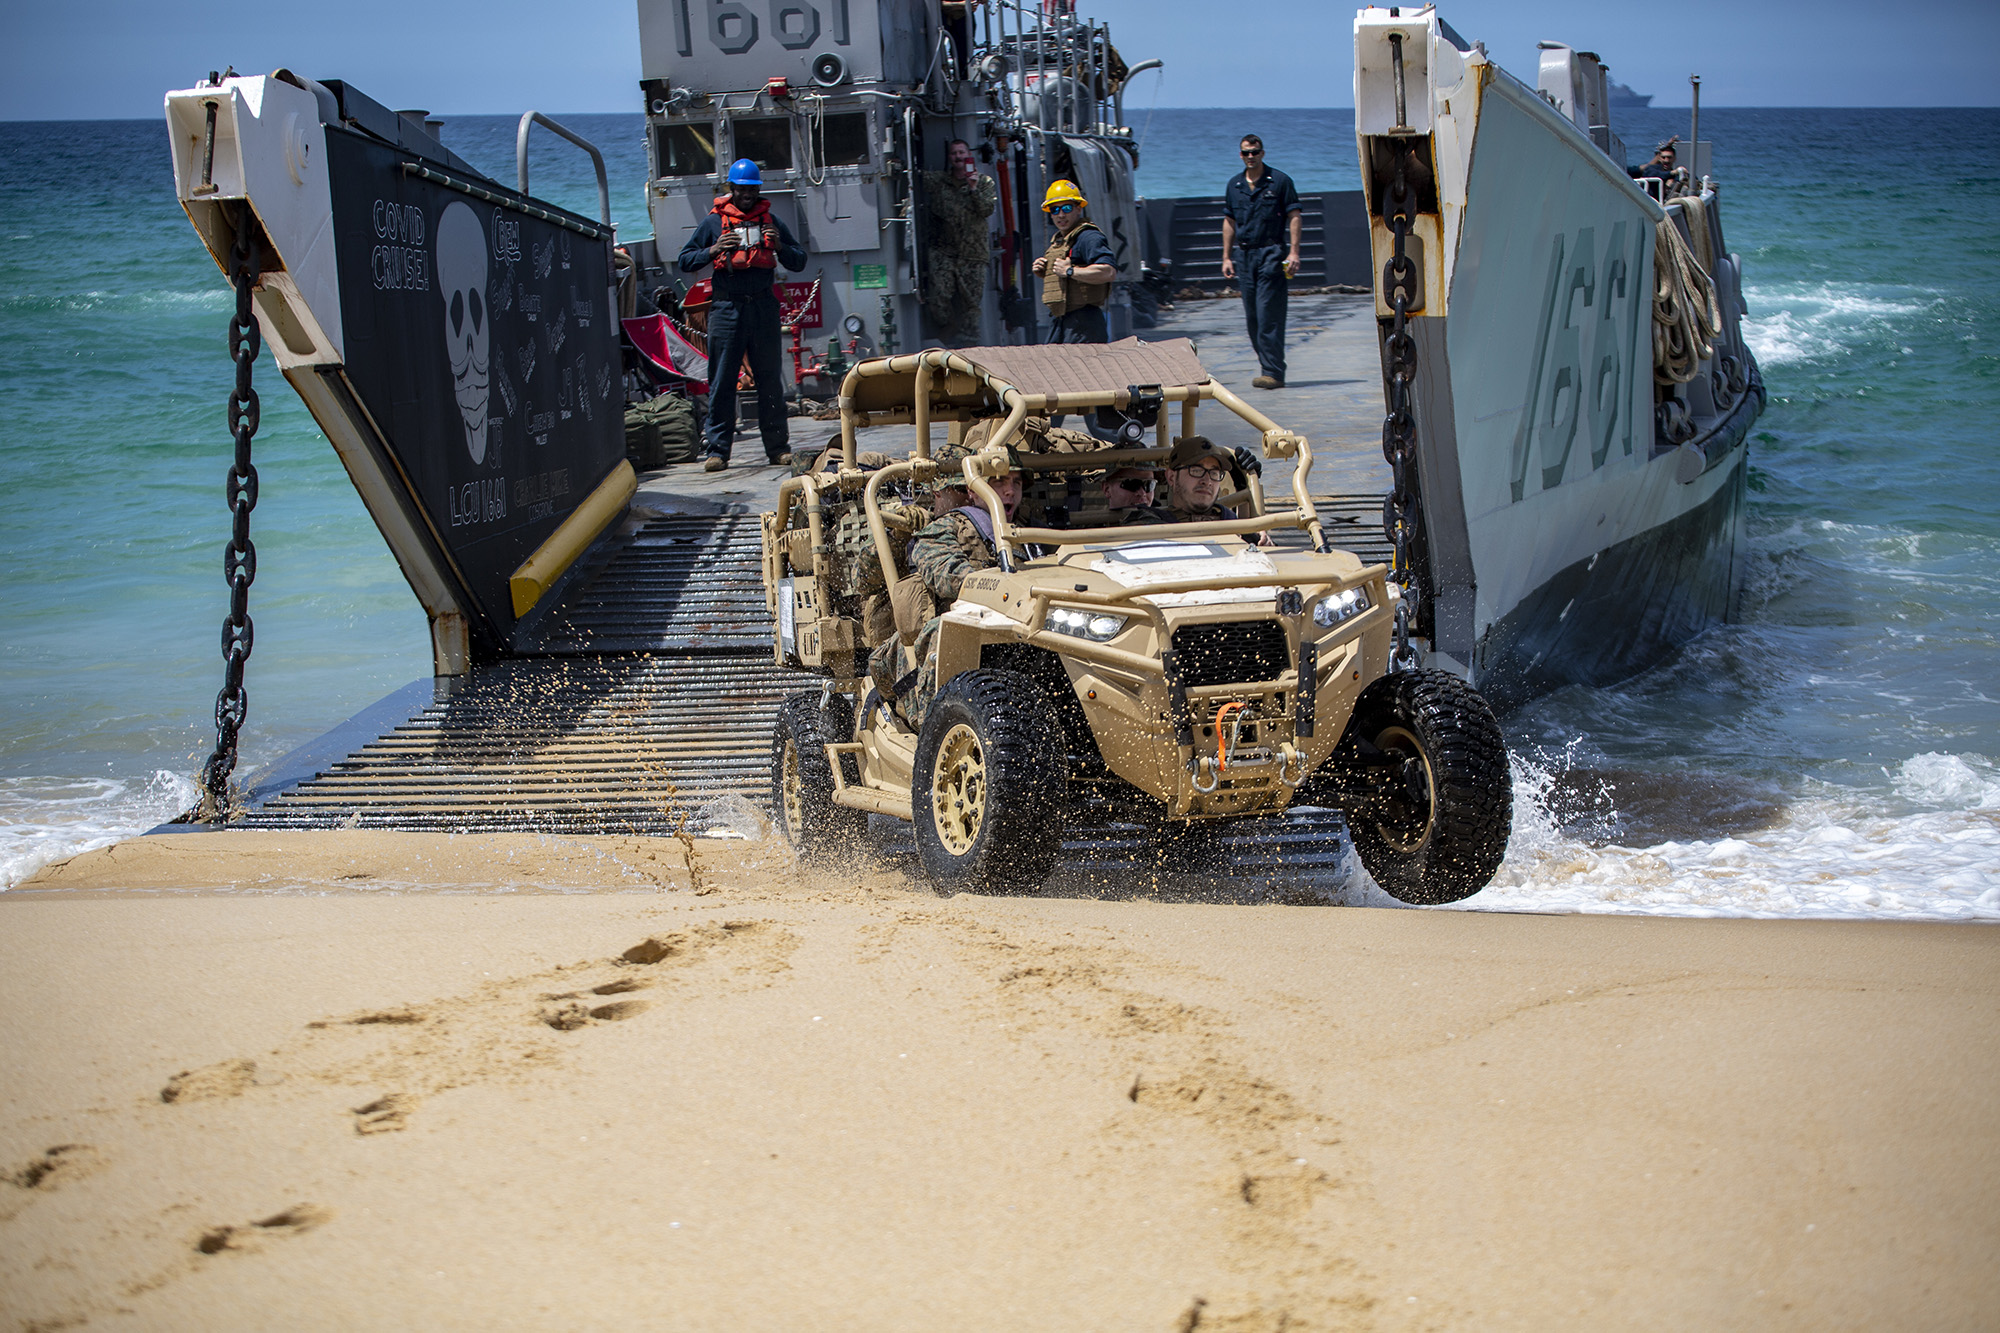 Landing Craft Utility (LCU) 1661 deploys a Utility Tactical Vehicle during CONTEX-PHIBEX, a bilateral amphibious exercise between the U.S. and Portuguese naval services, May 9, 2021, in Pinhiero Da Cruz, Portugal. (1st Lt. Mark Andries/Marine Corps)